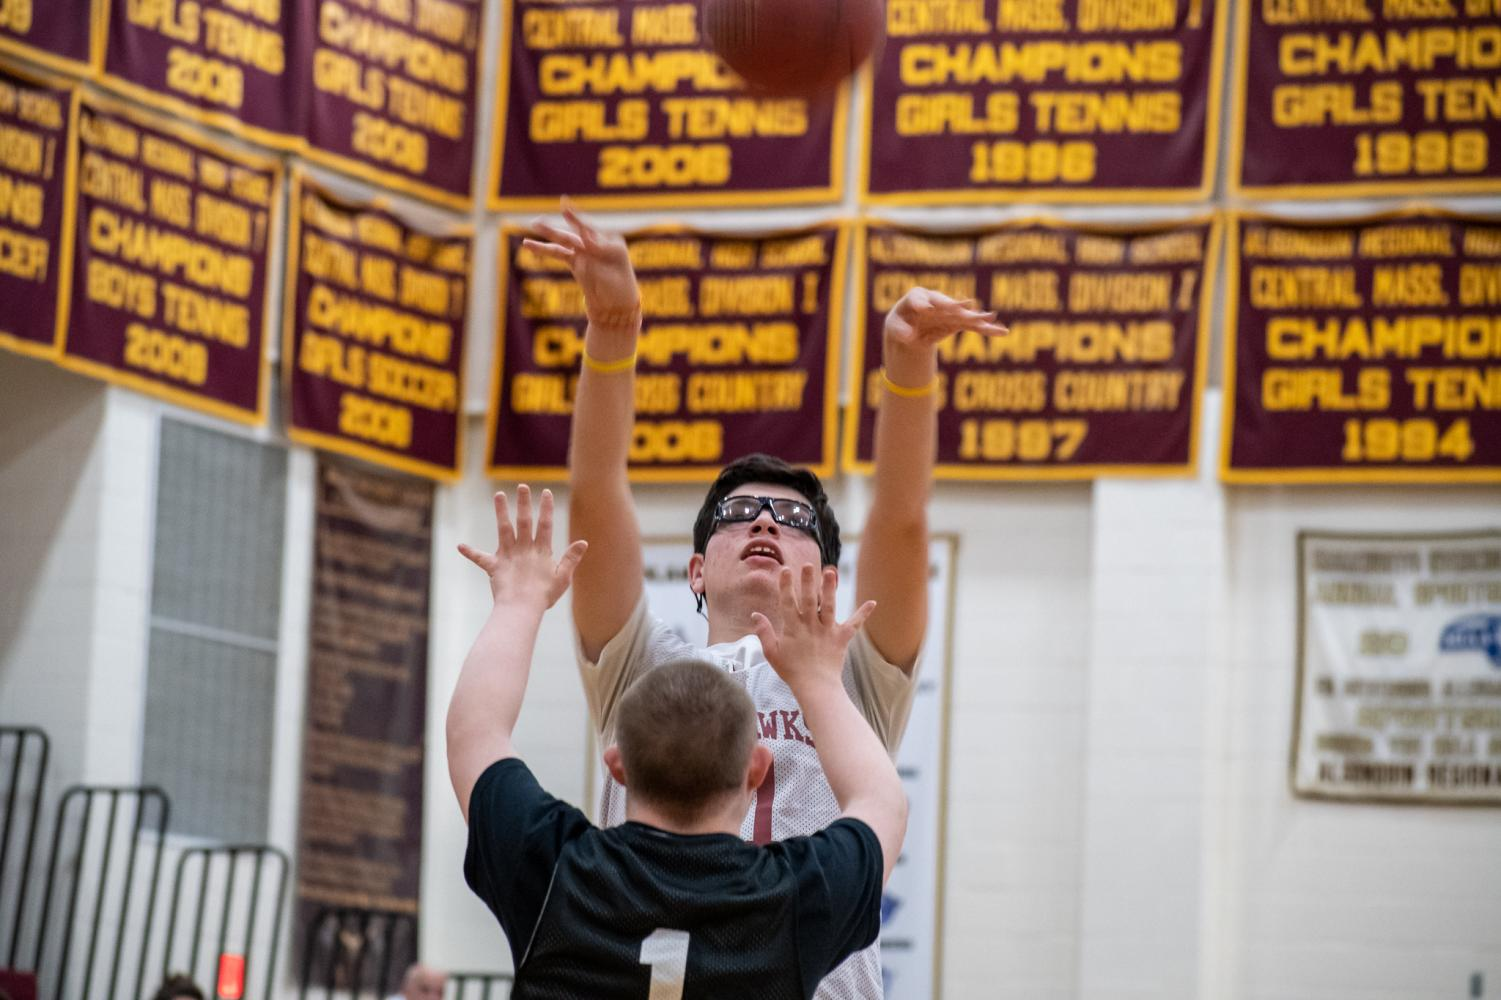 Junior Jack O'Connor shoots the ball over a Marlborough opponent on Oct. 22.  The unified basketball team won the game 60-30.